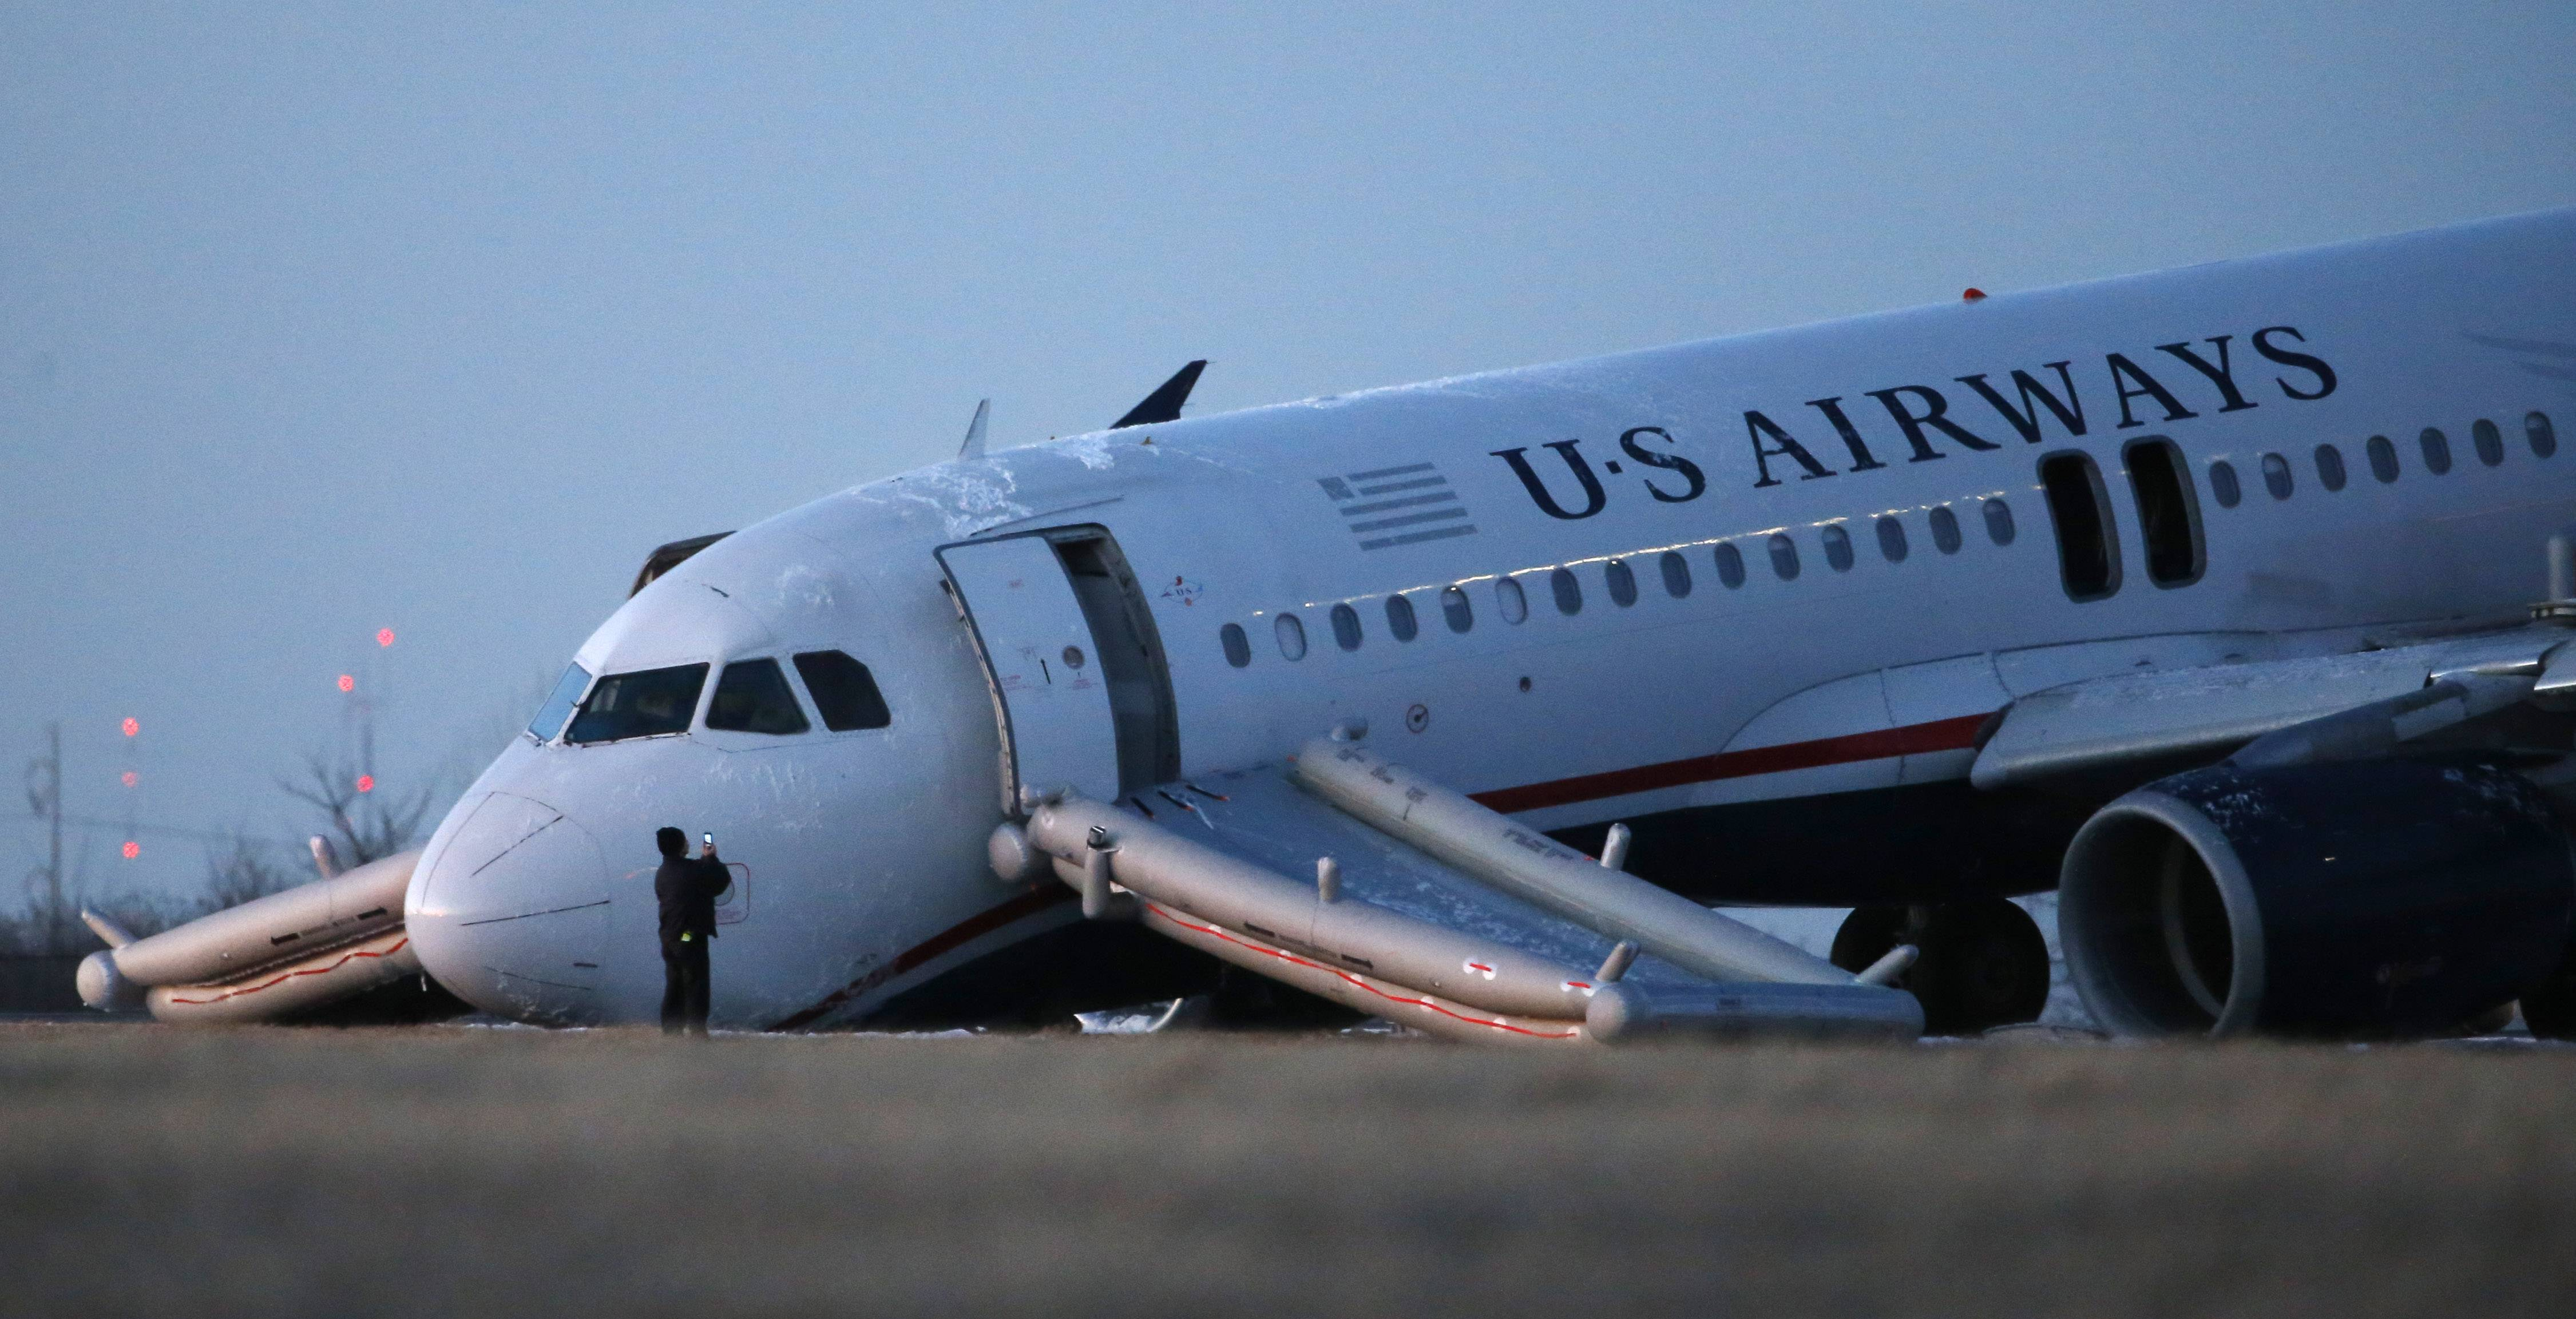 A person takes a photo of a damaged US Airways jet at the end of a runway at the Philadelphia International Airport, Thursday, March 13, 2014, in Philadelphia. Airline officials said the flight was heading to Fort Lauderdale, Fla., when the pilot was forced to abort takeoff around 6:30 p.m., after the front landing gear failed. An airport spokeswoman said no injuries have been reported.